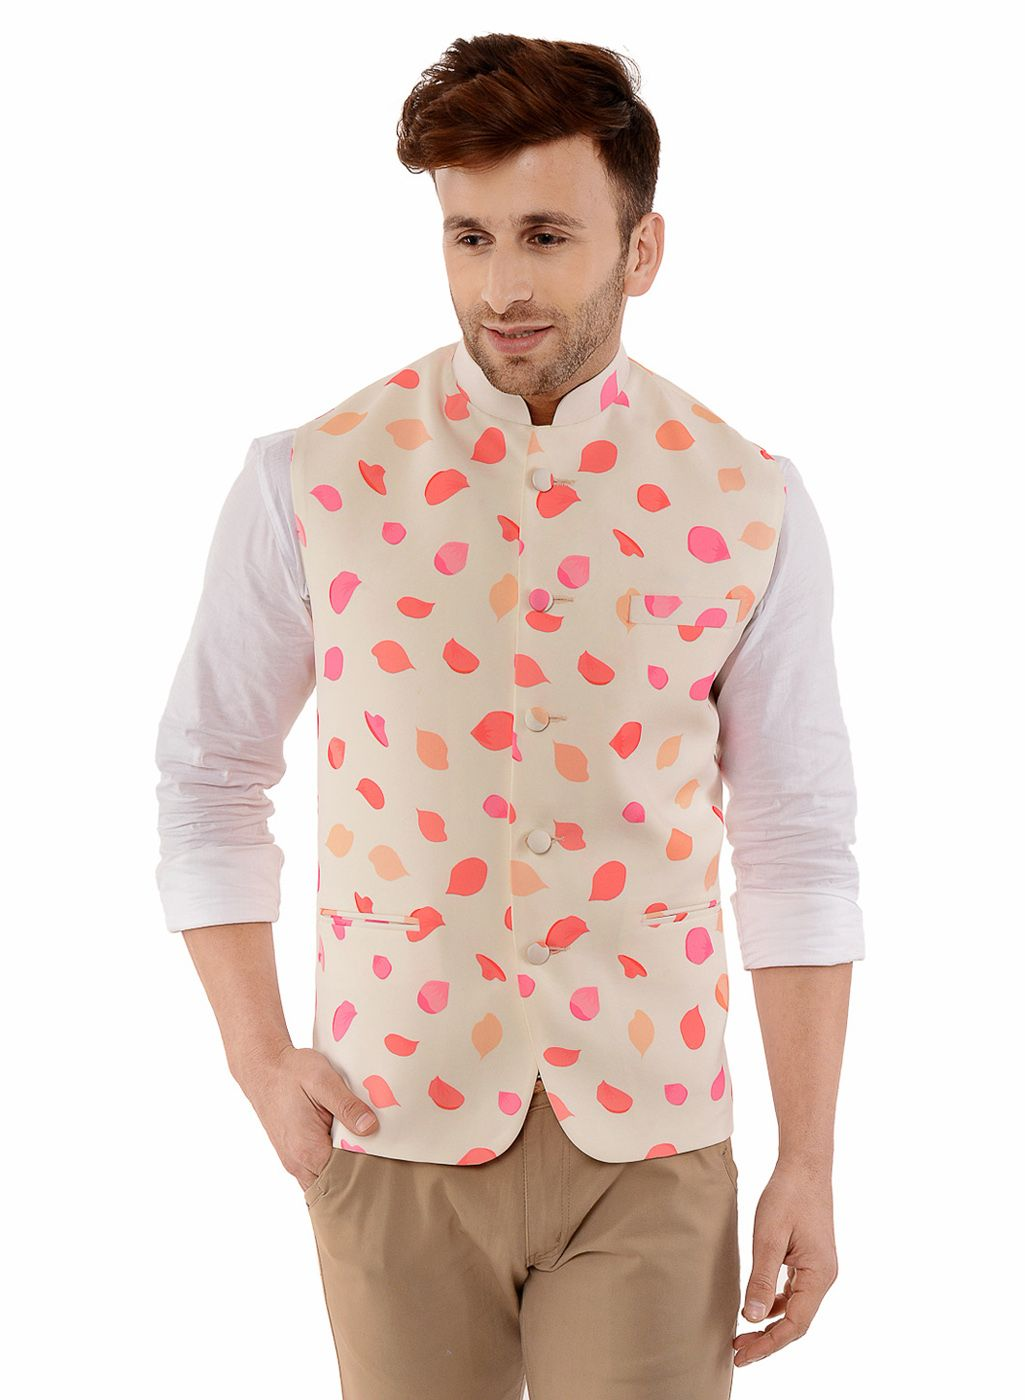 cabc5c3b Indian Fashion · Buy Lee marc nehru waist coat for men Cream Color Online  at Low prices in India